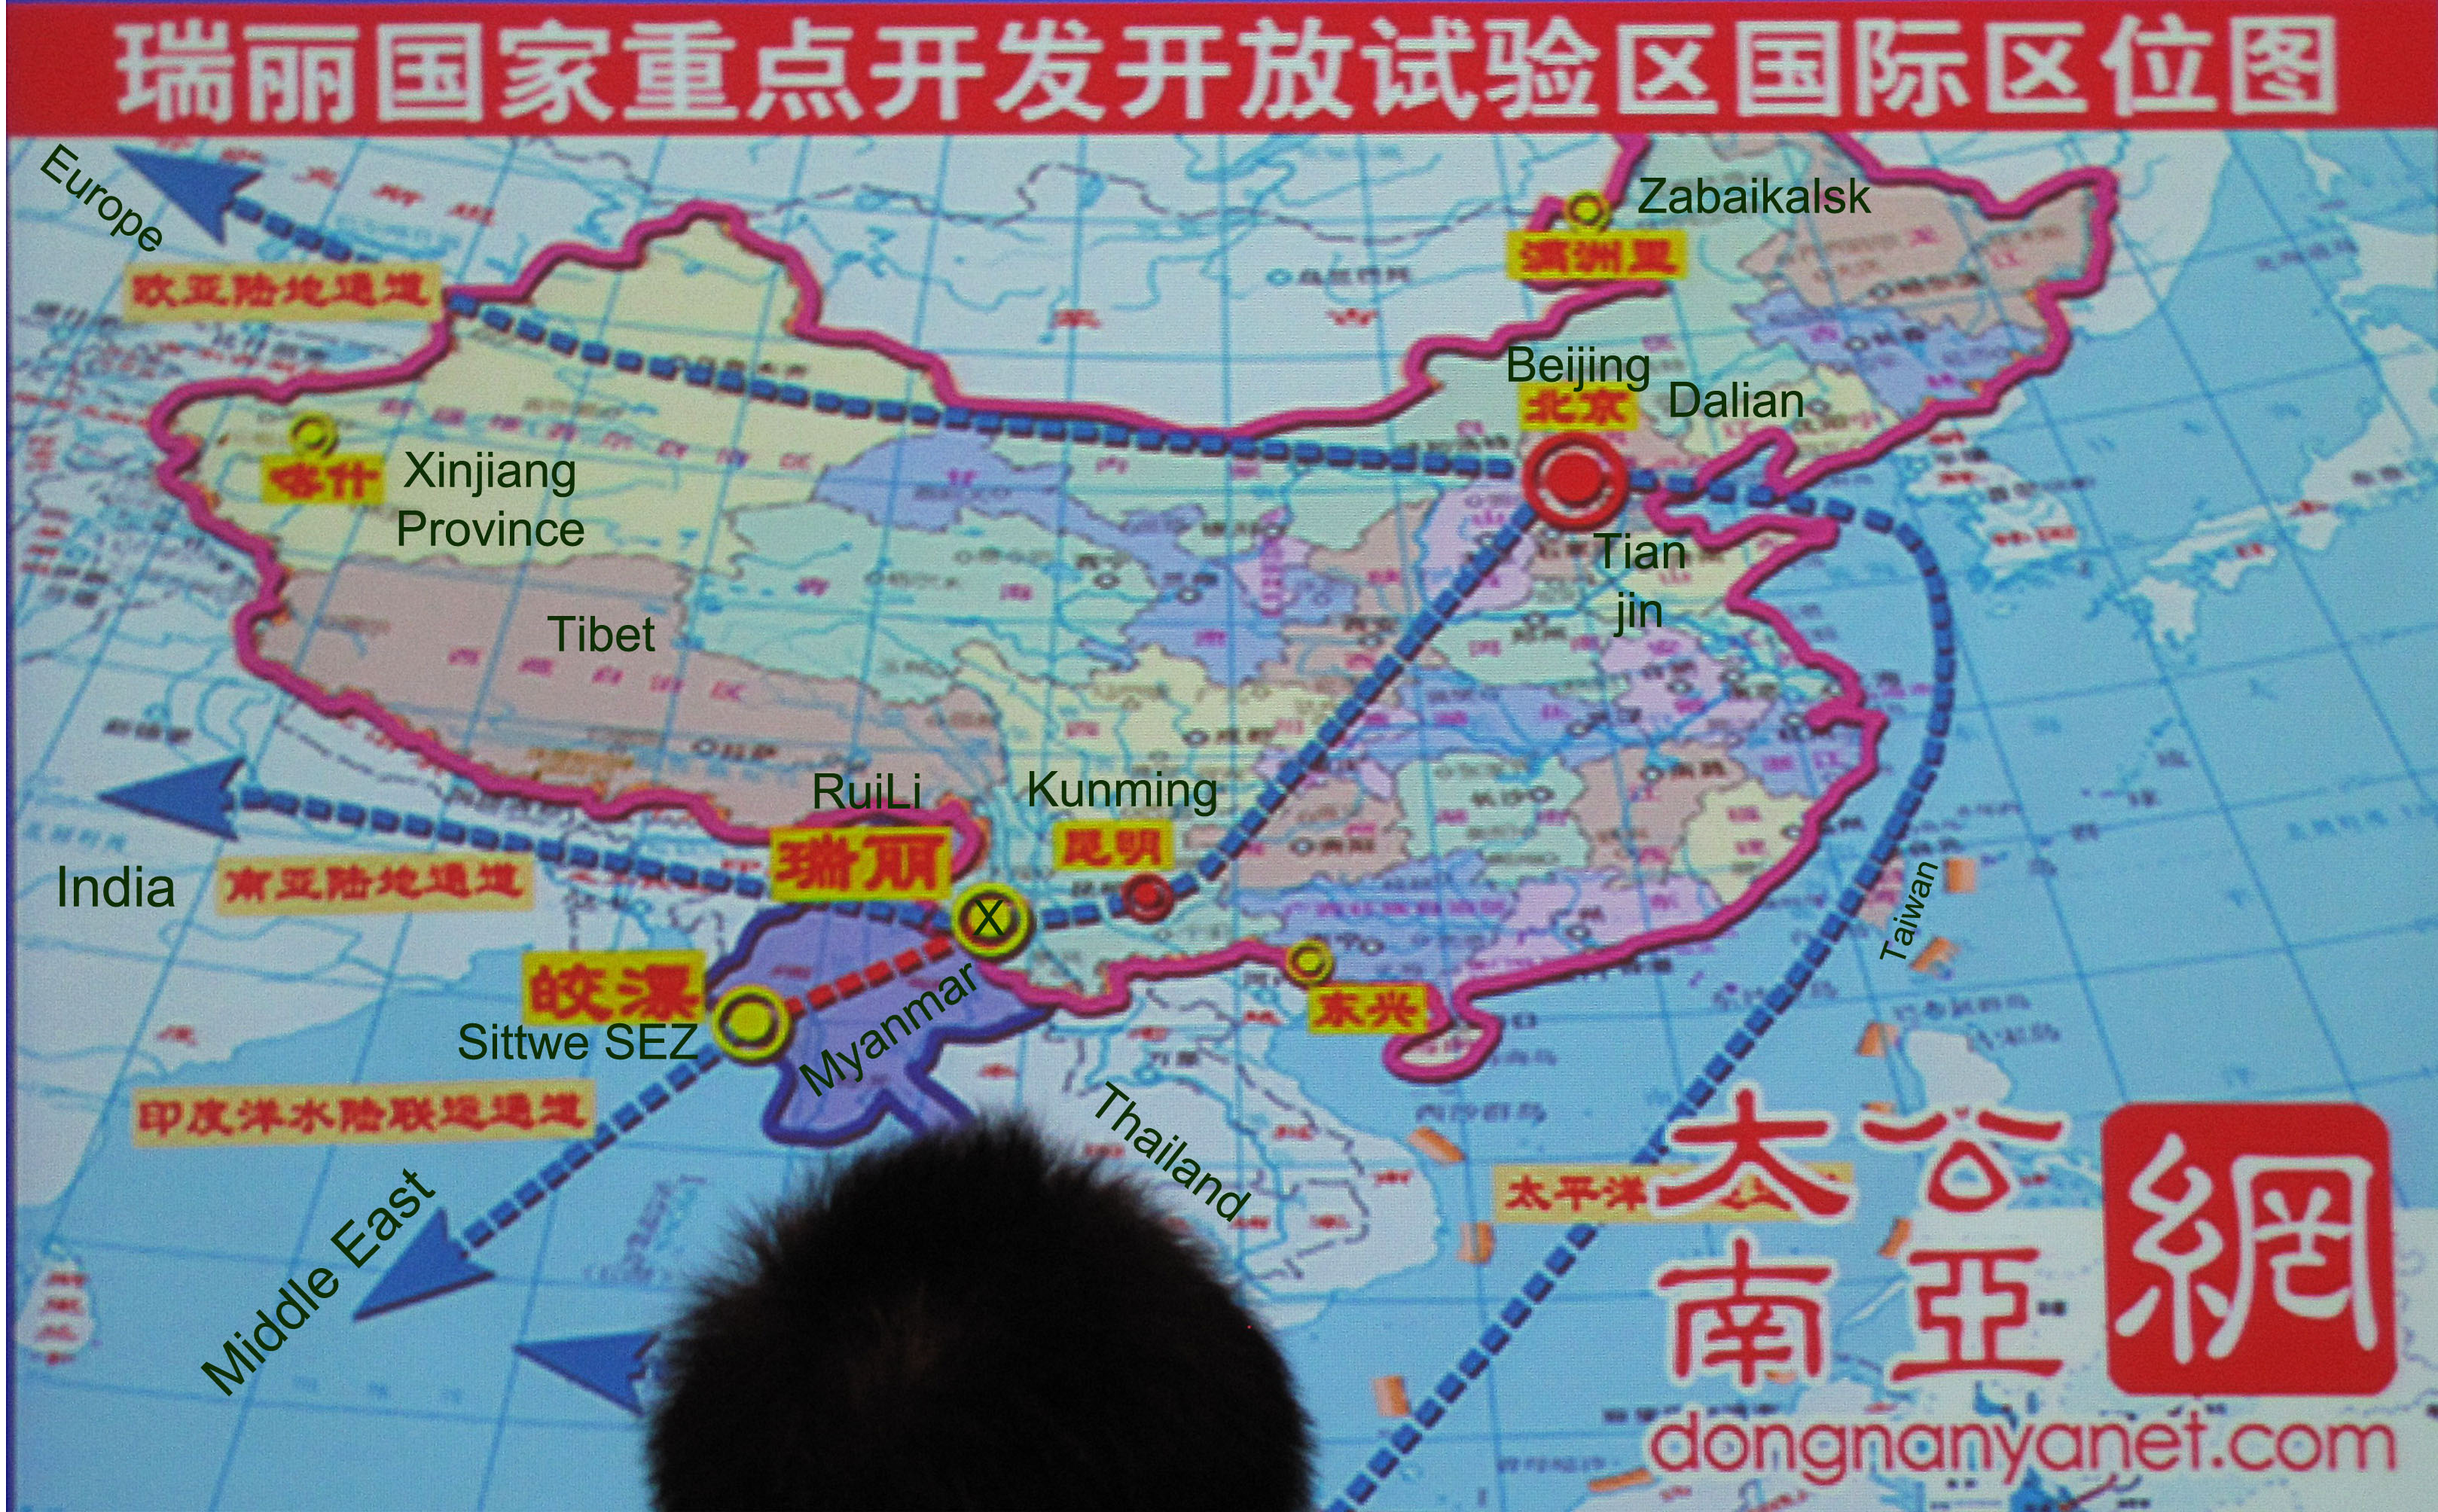 Myanmar the Missing Link from Western China to India's N.E. States